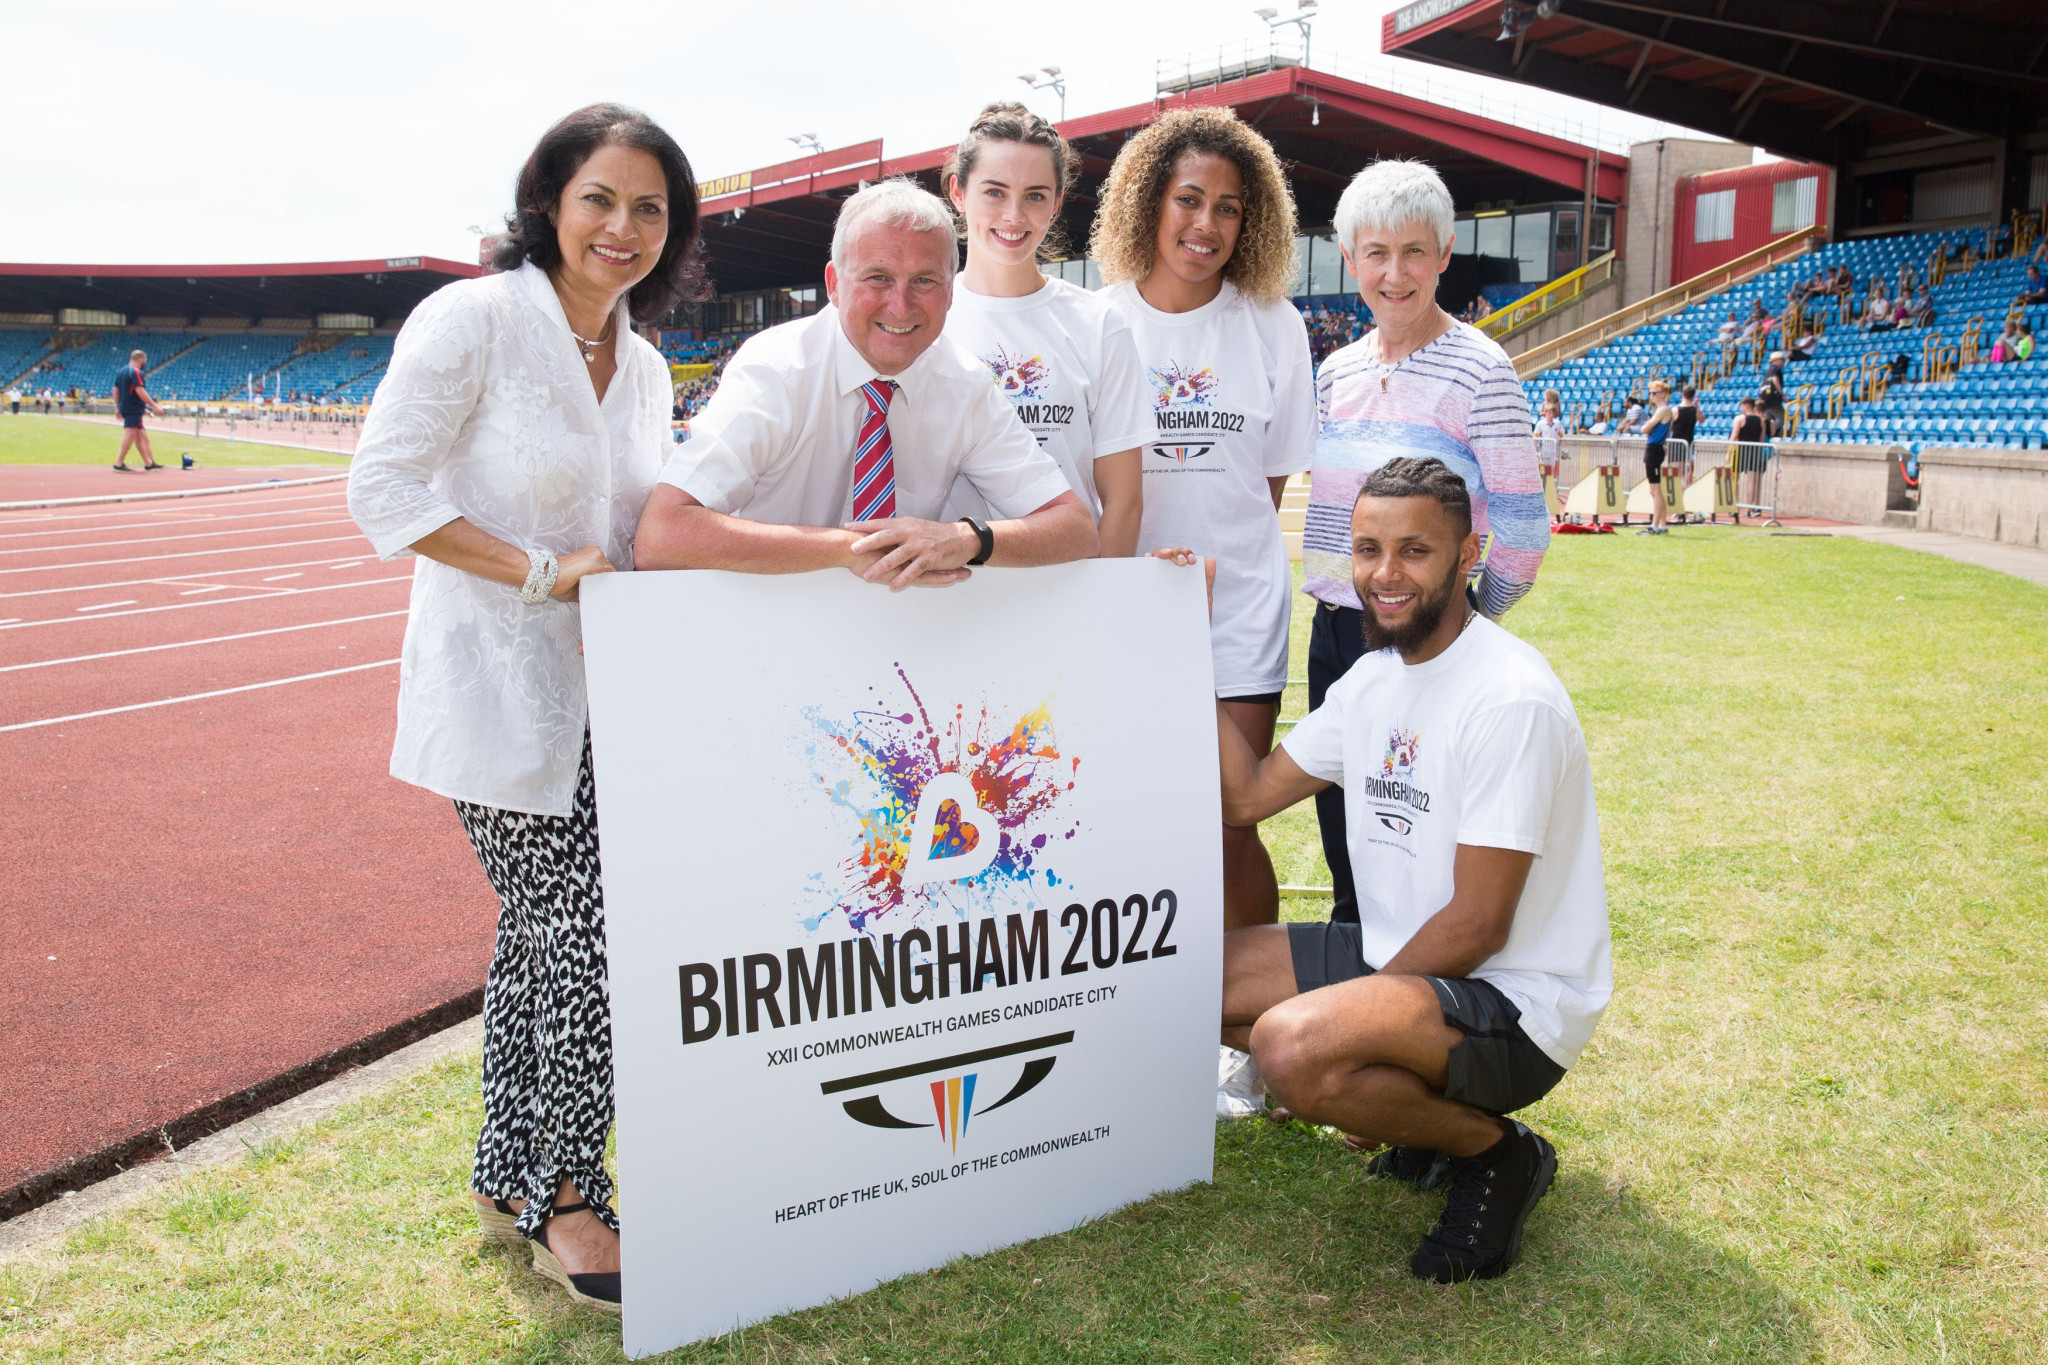 Birmingham City Council Leader and head of the bid for the 2022 Commonwealth Games Ian Ward, second left, helped persuade Councillors to back a new financial offer ©Birmingham 2022